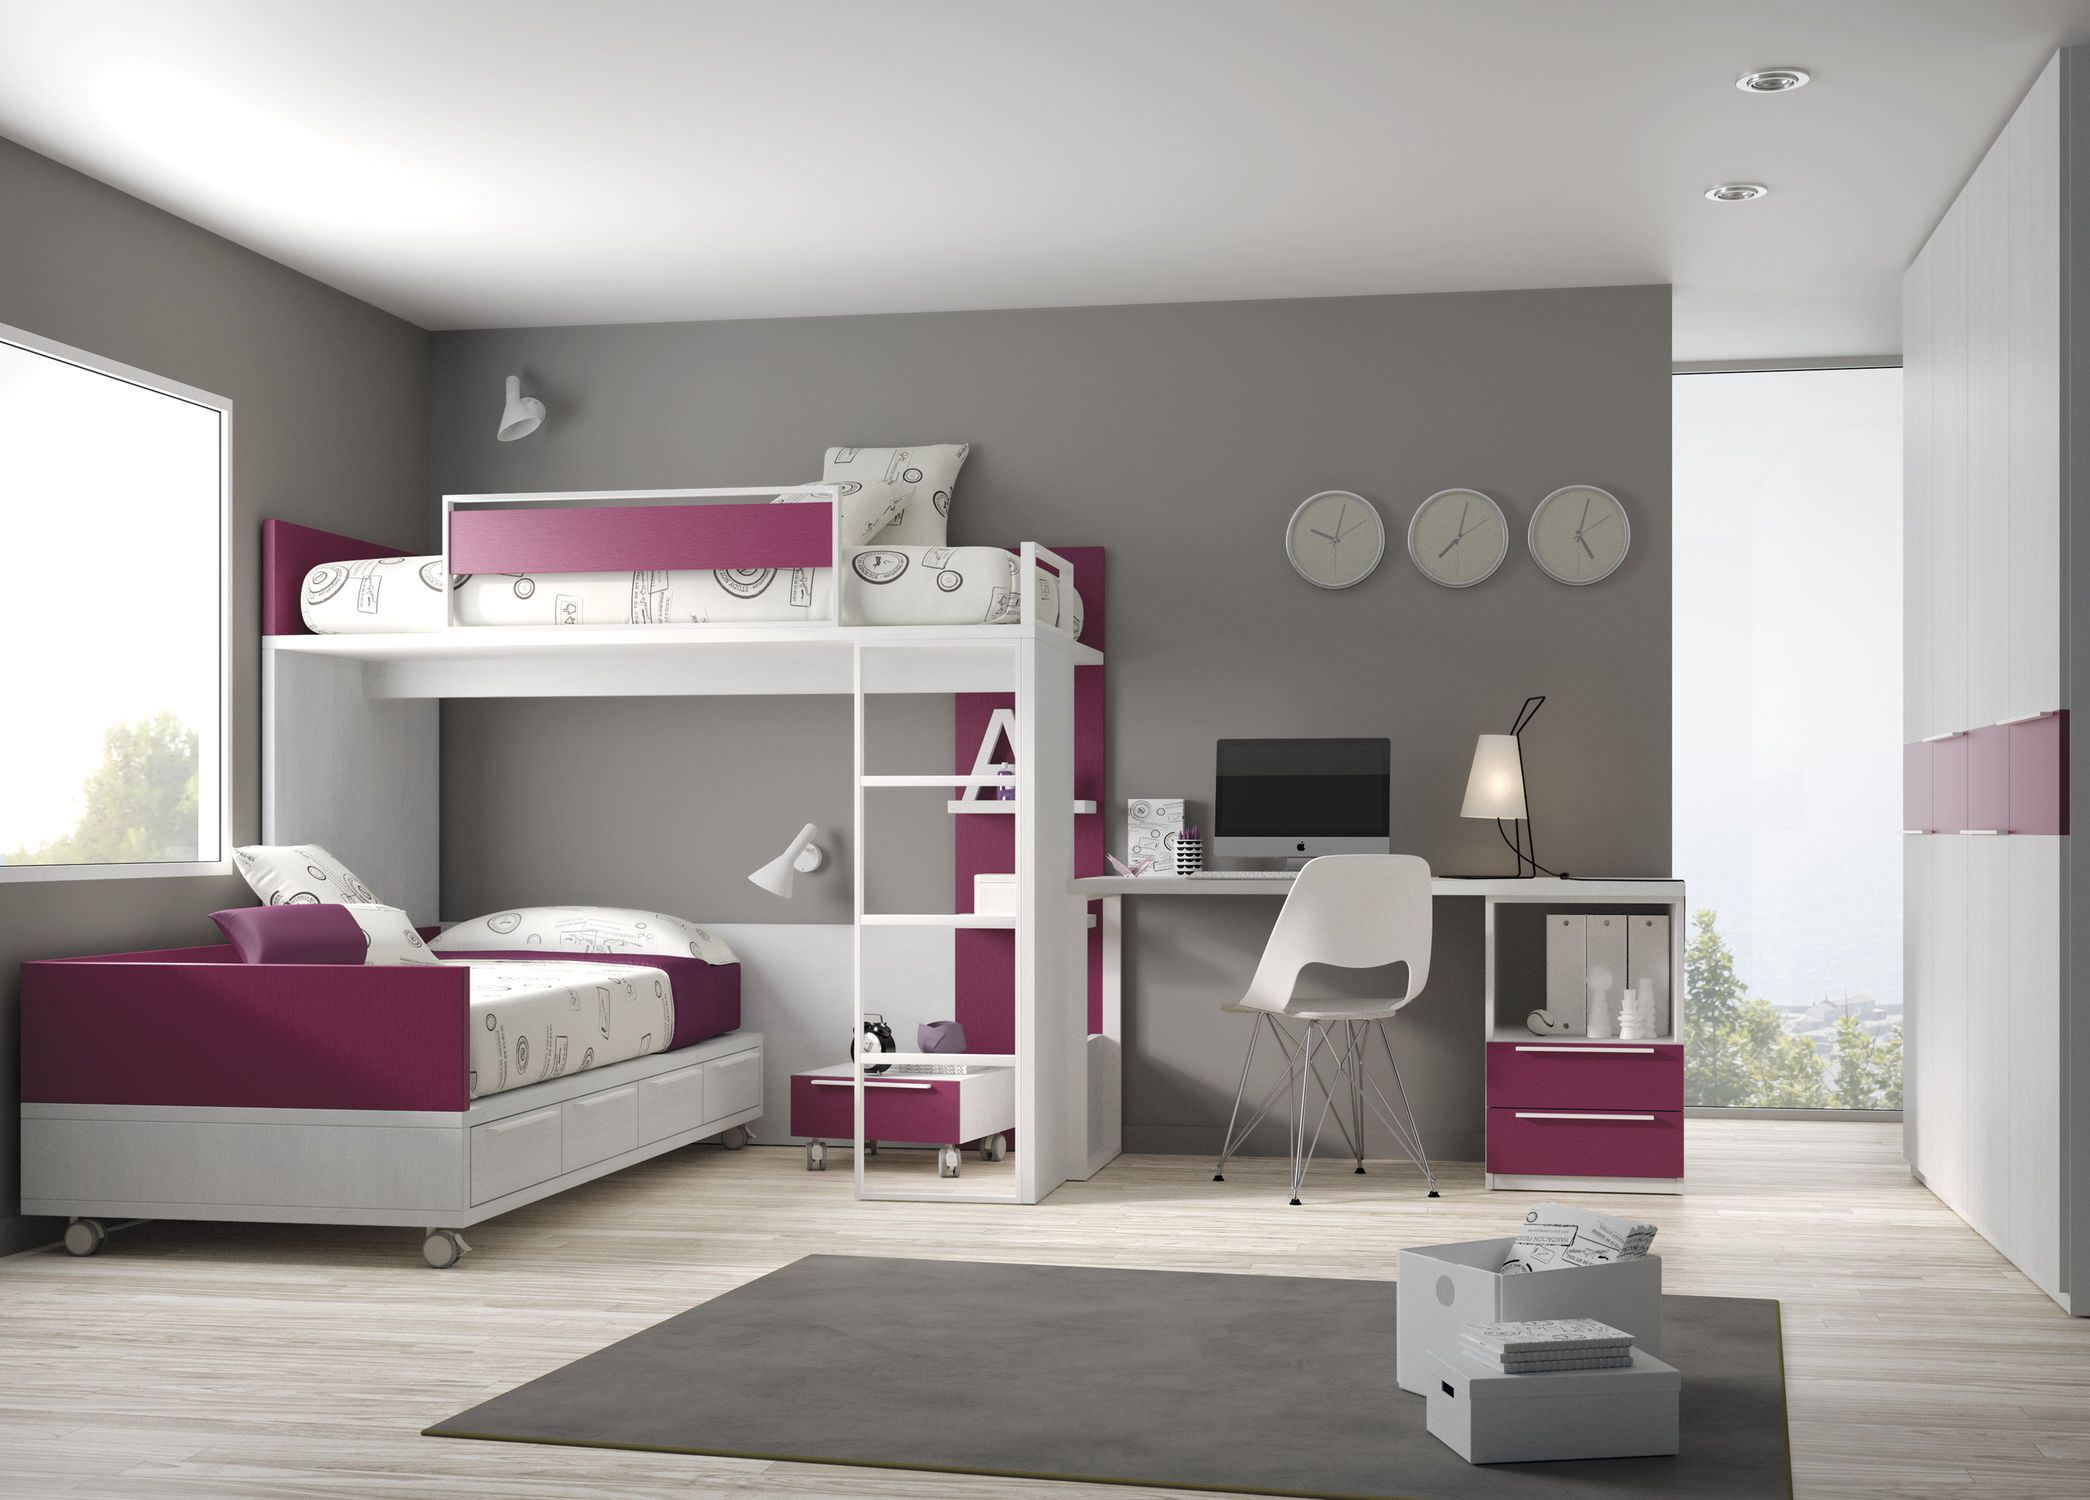 Lits Superposes Escamotables Chambre Lit Superposé Angle Google Search House Ideas